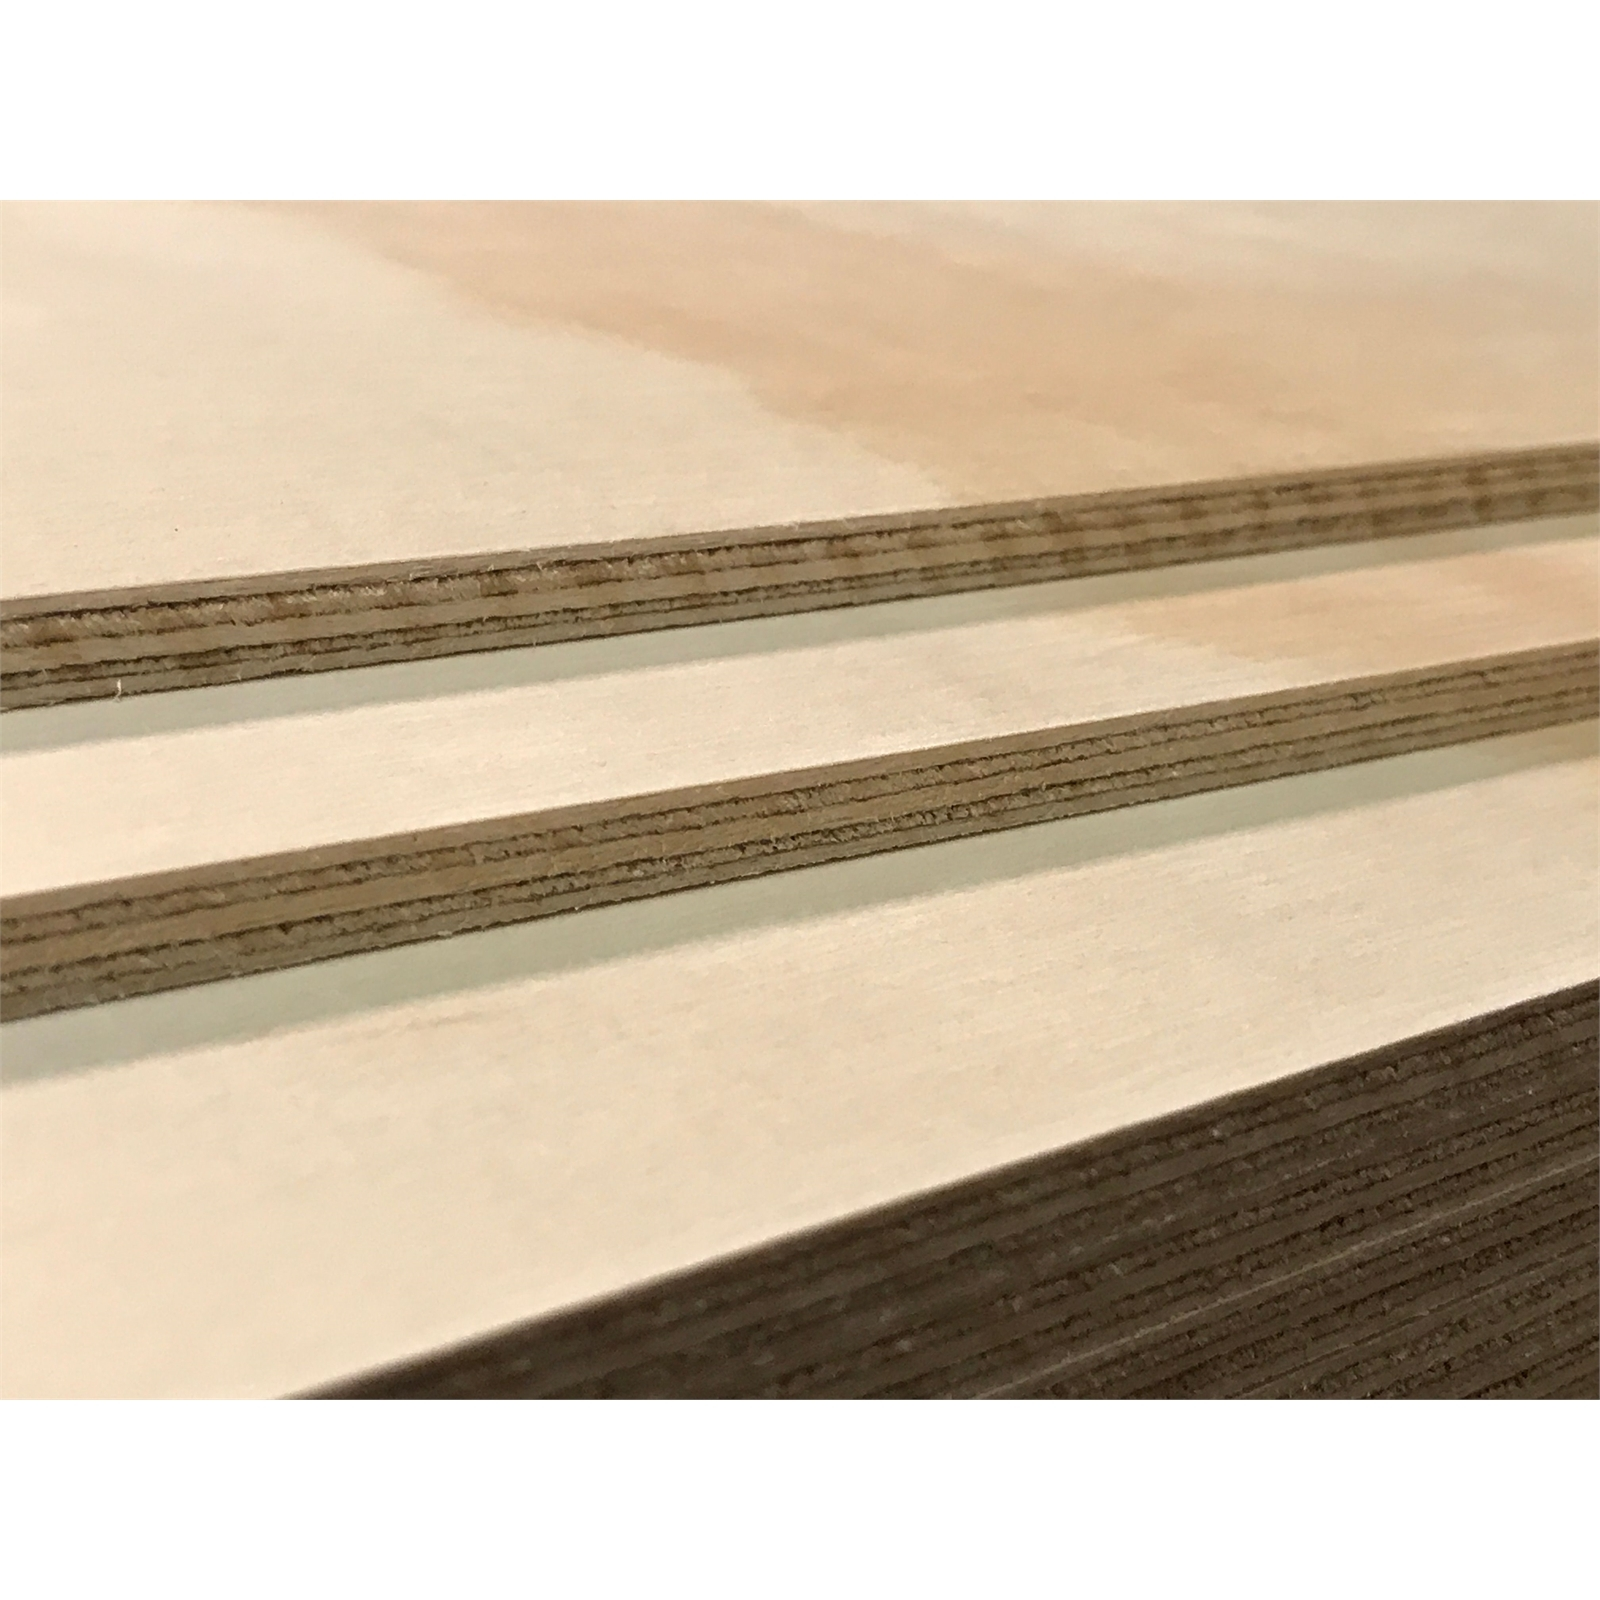 Tigerply 2400 x 1200 x 12mm Non-Structural Untreated Plywood